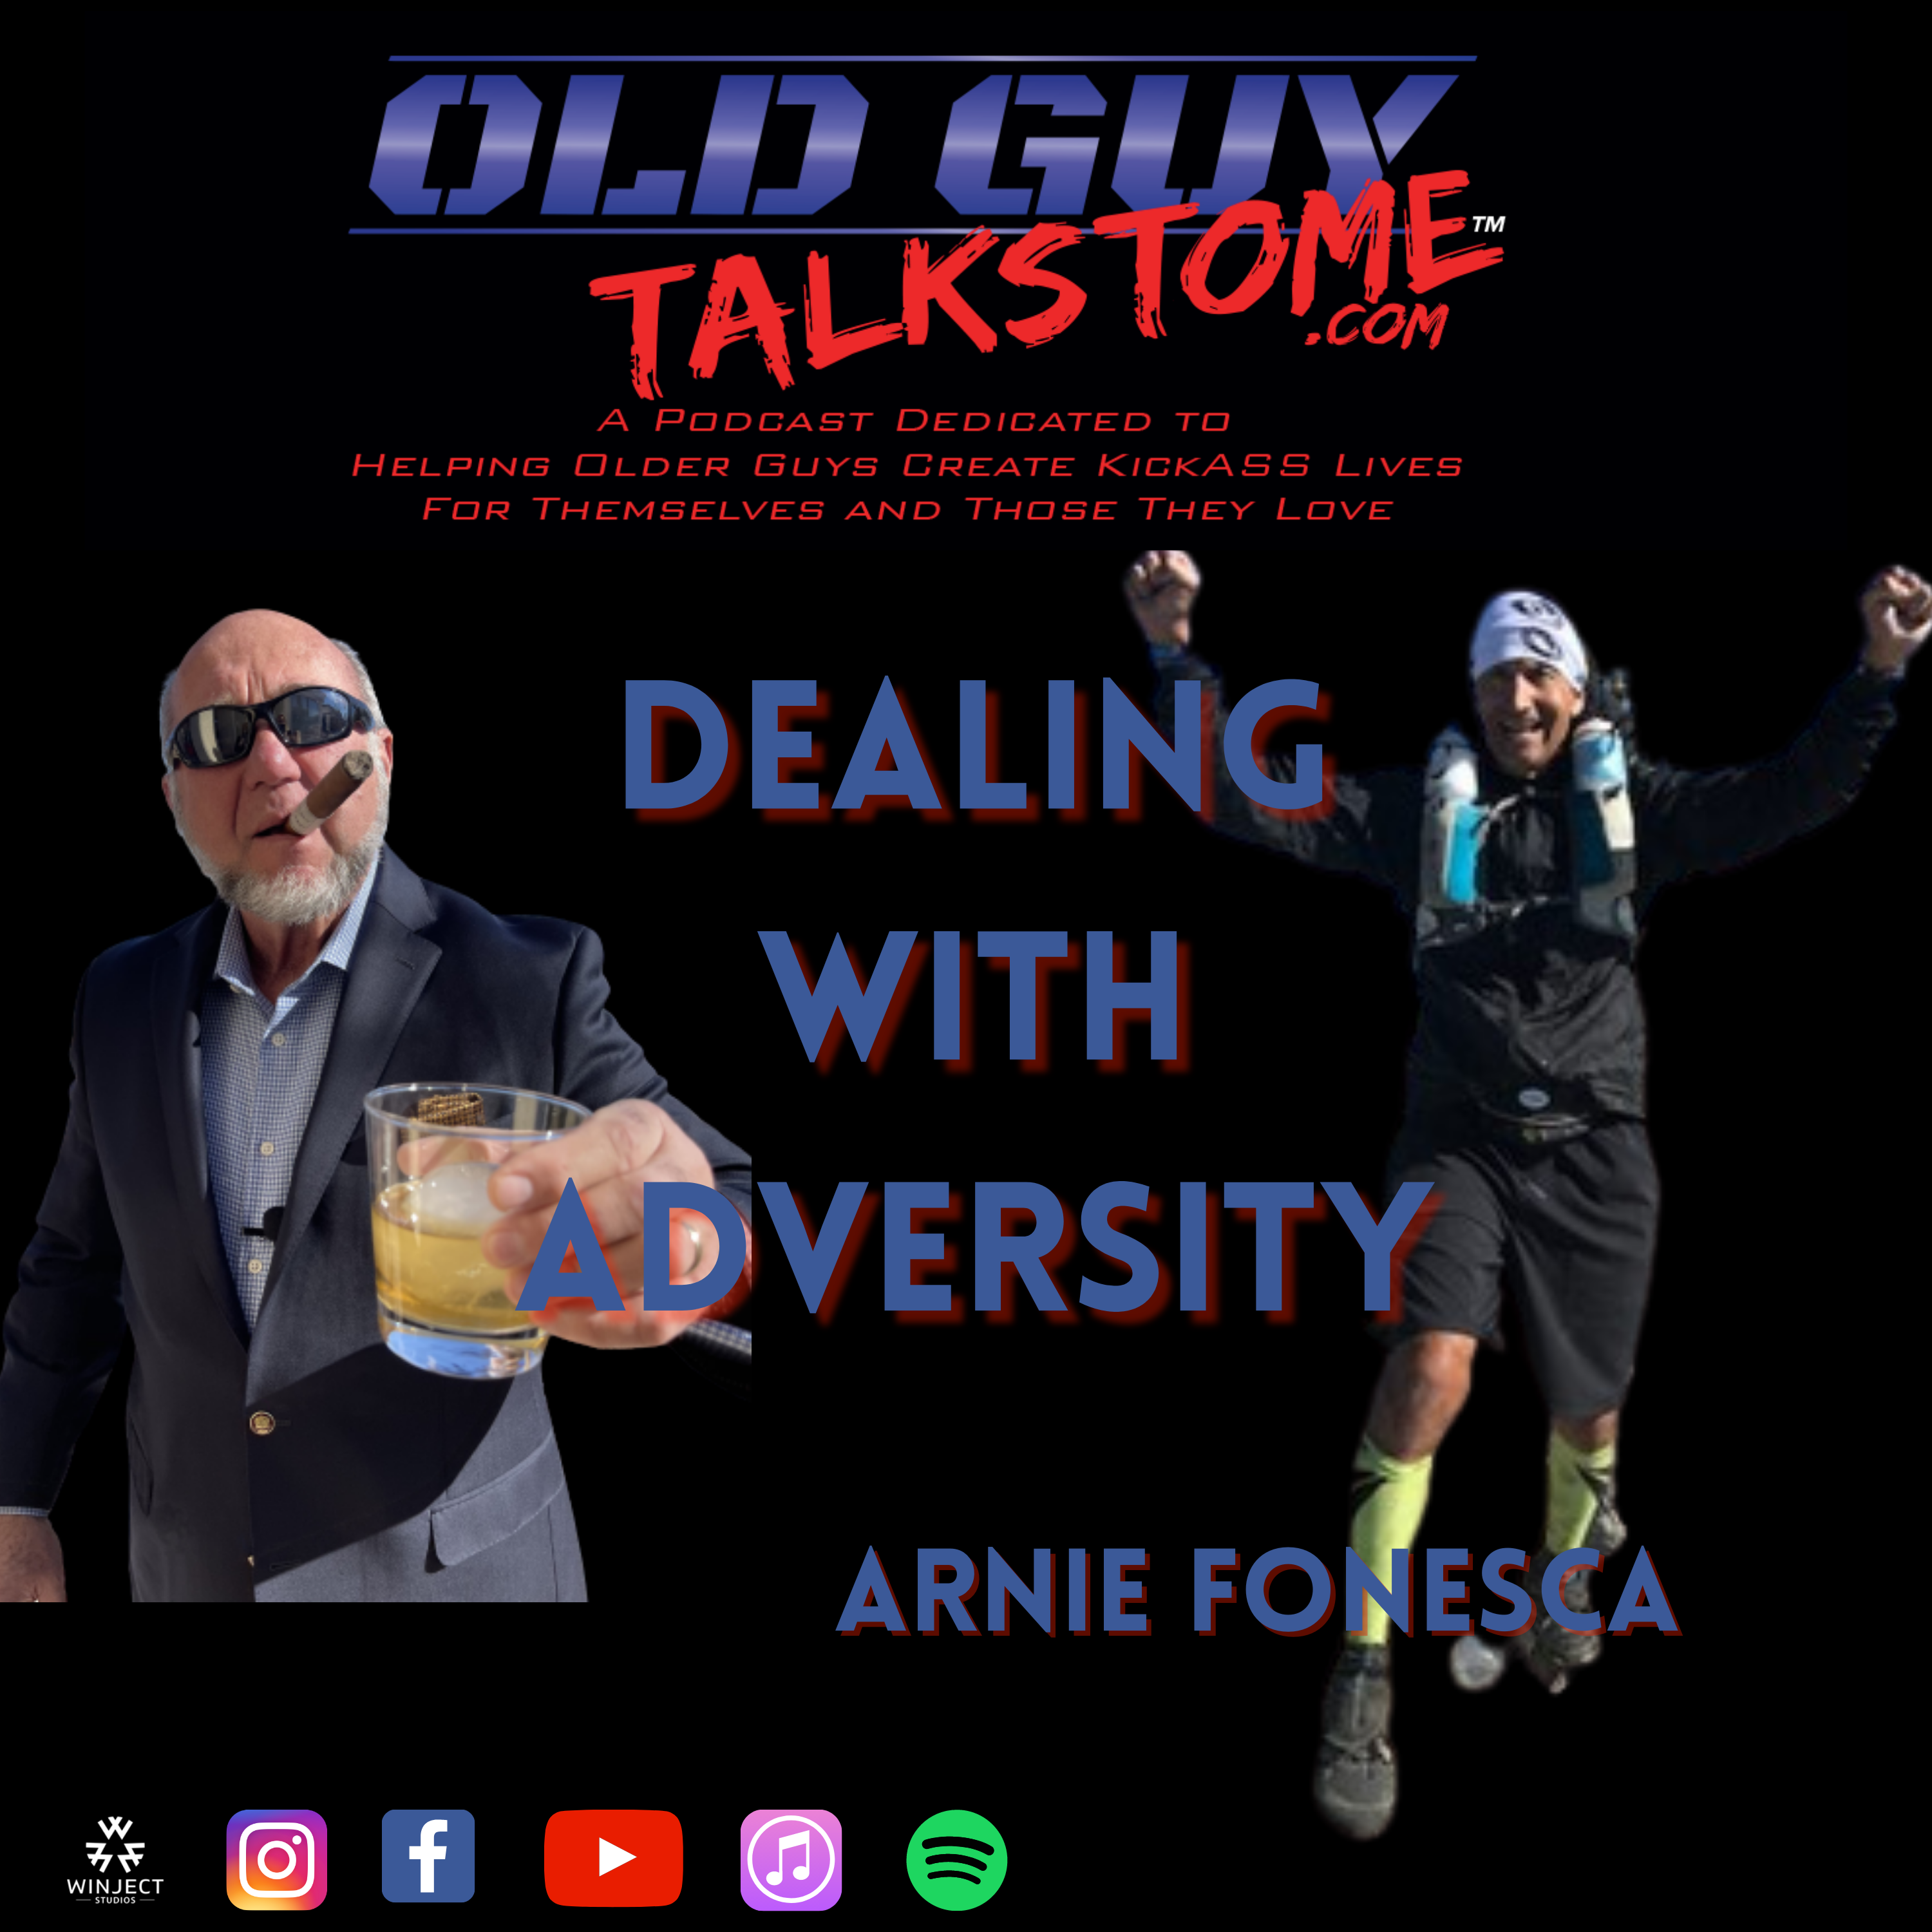 OldGuyTalksToMe - 85.  Dealing with Adversity with Arnie Fonesca Jr.